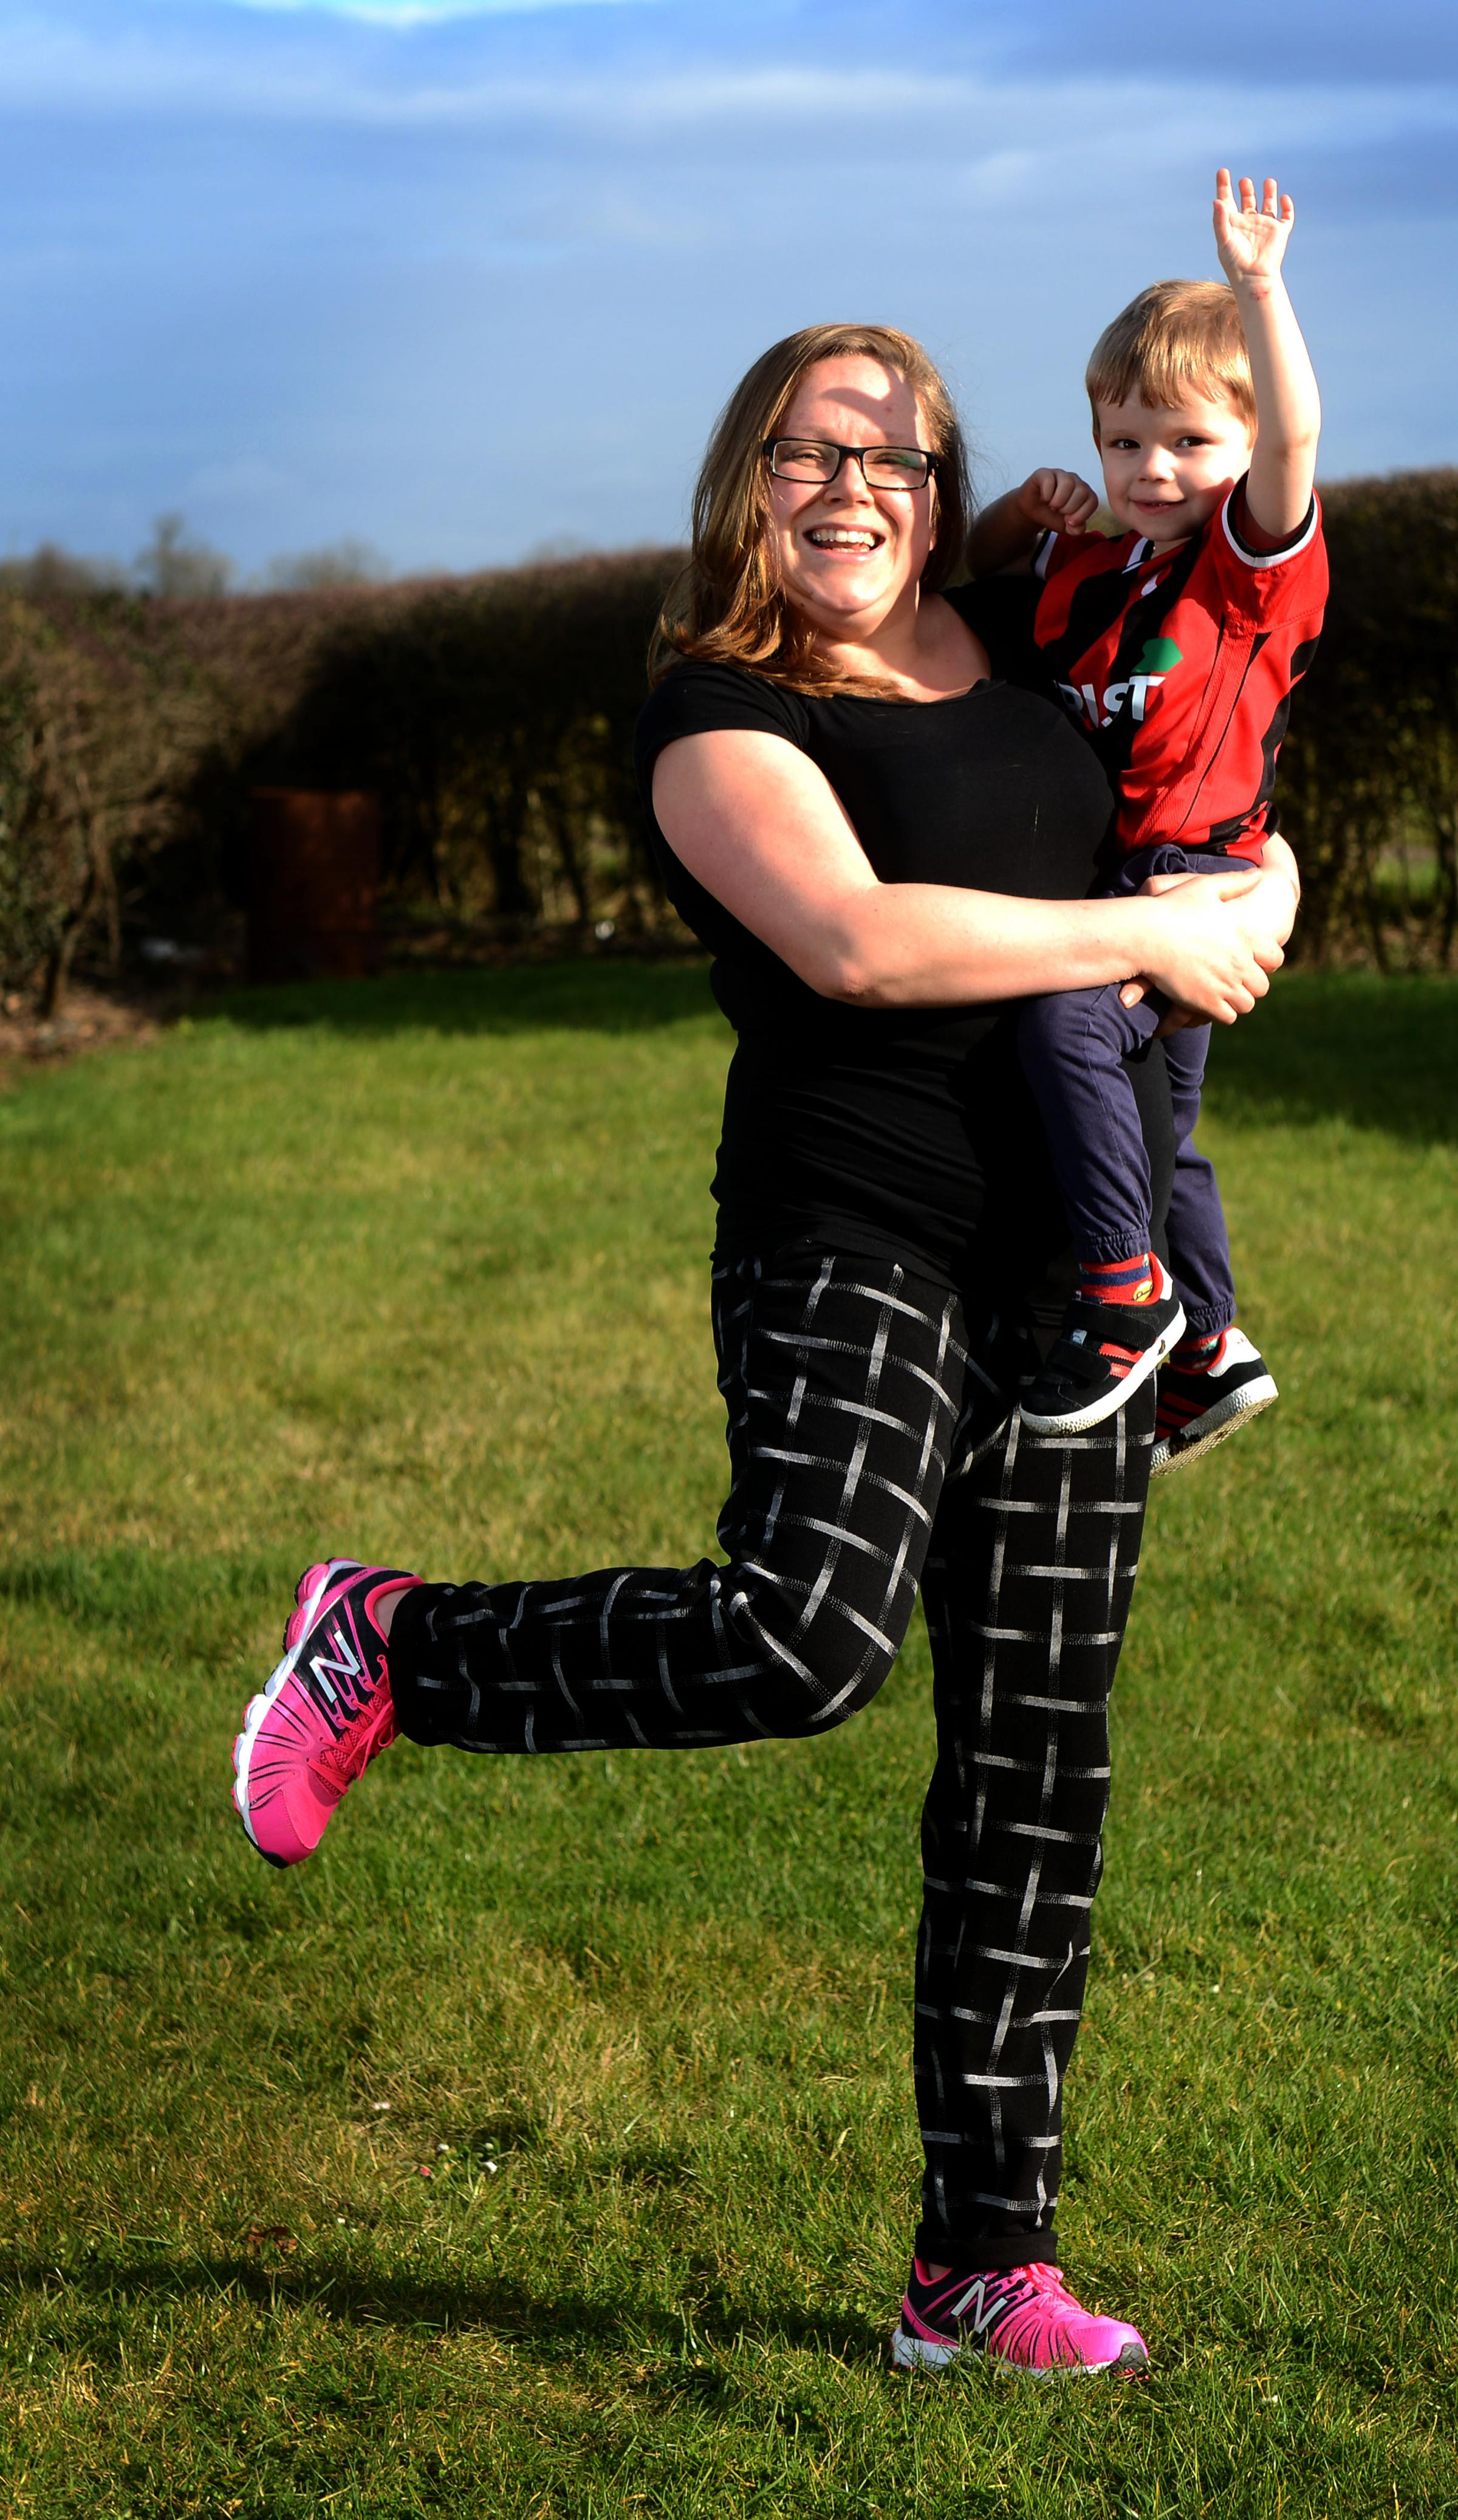 Jo Martin has signed up for the OX5 Run to raise funds for the children's hospital which treated her son Harry